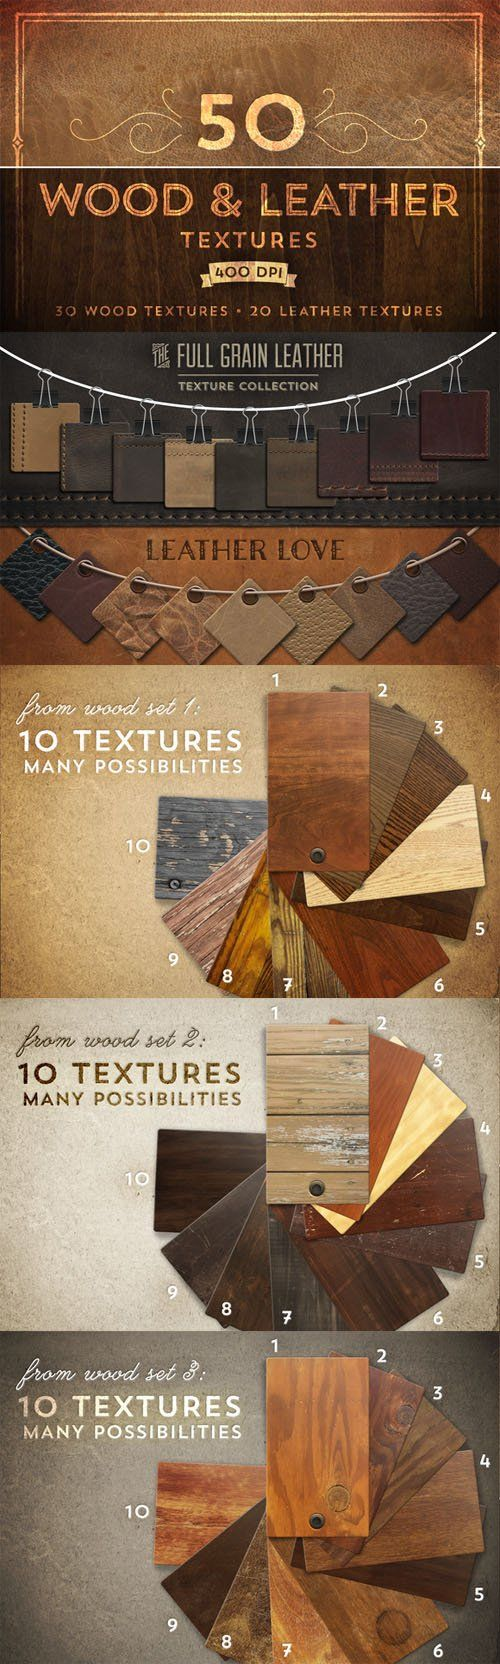 50 Wood and Leather Textures » Vector, PSD Templates, Stock Images, After Effects, Fonts, Web Design, Indesign